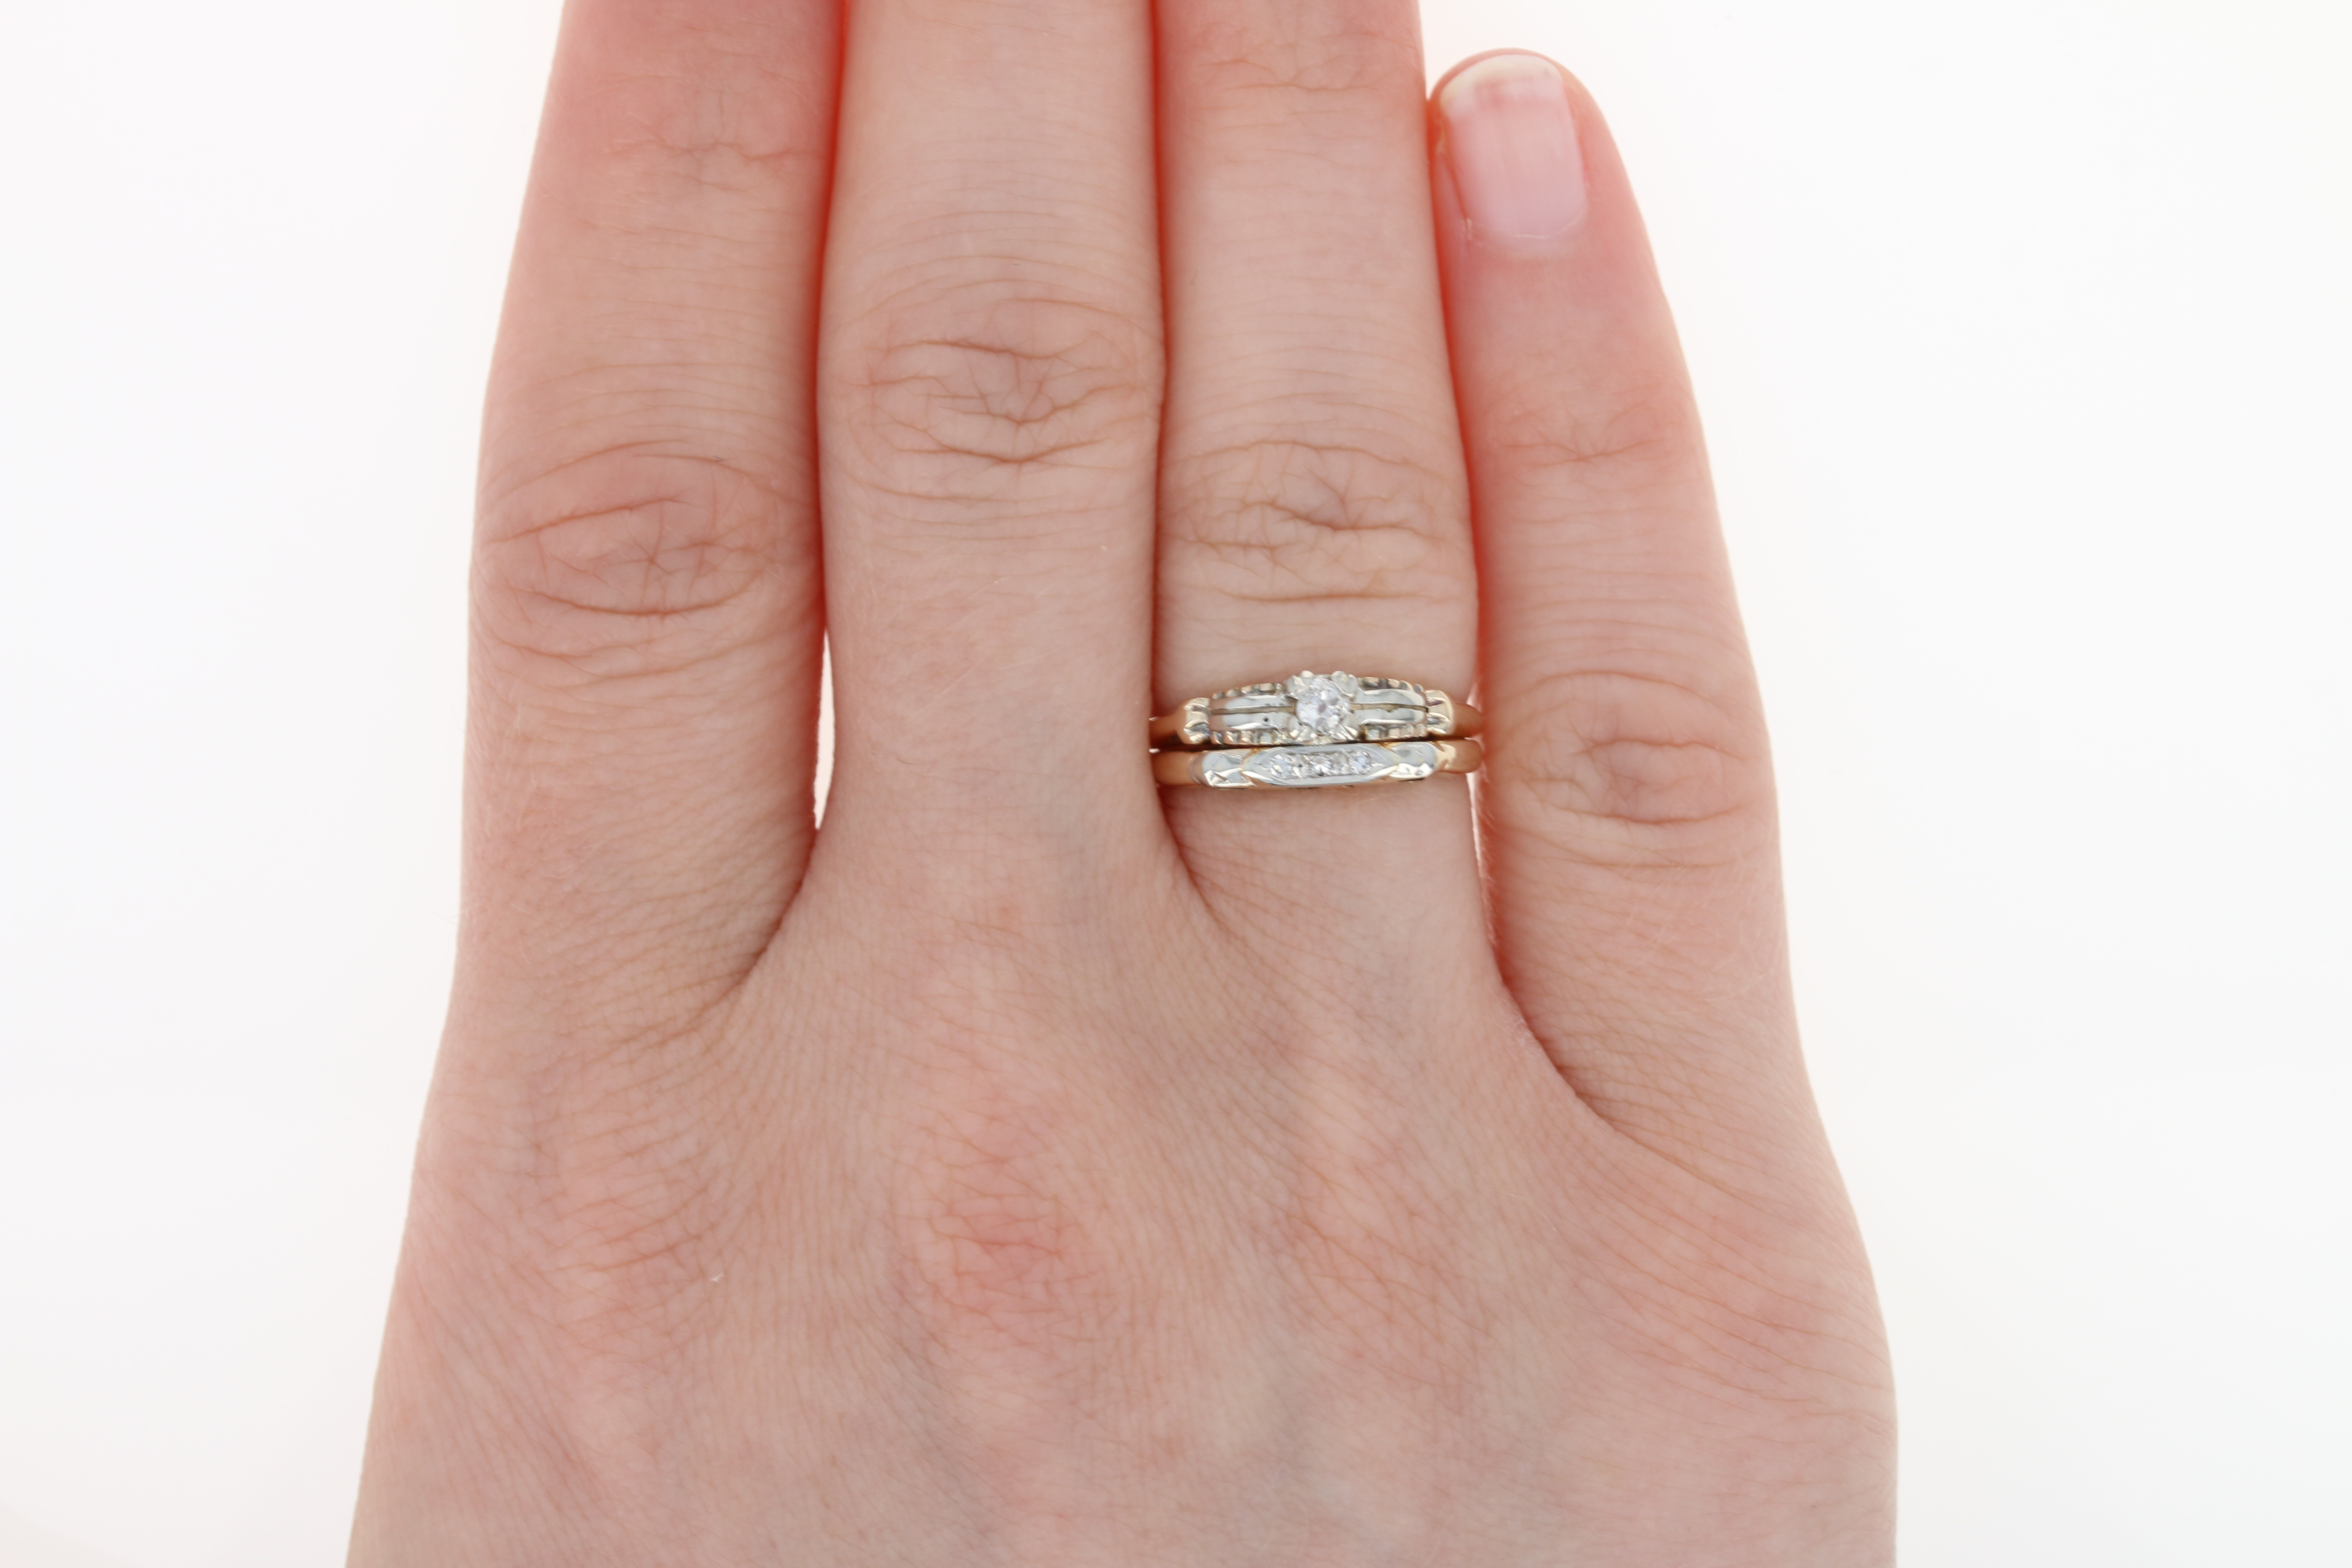 Joined Diamond Engagement Ring & Wedding Band - 14k Gold Vintage Old ...